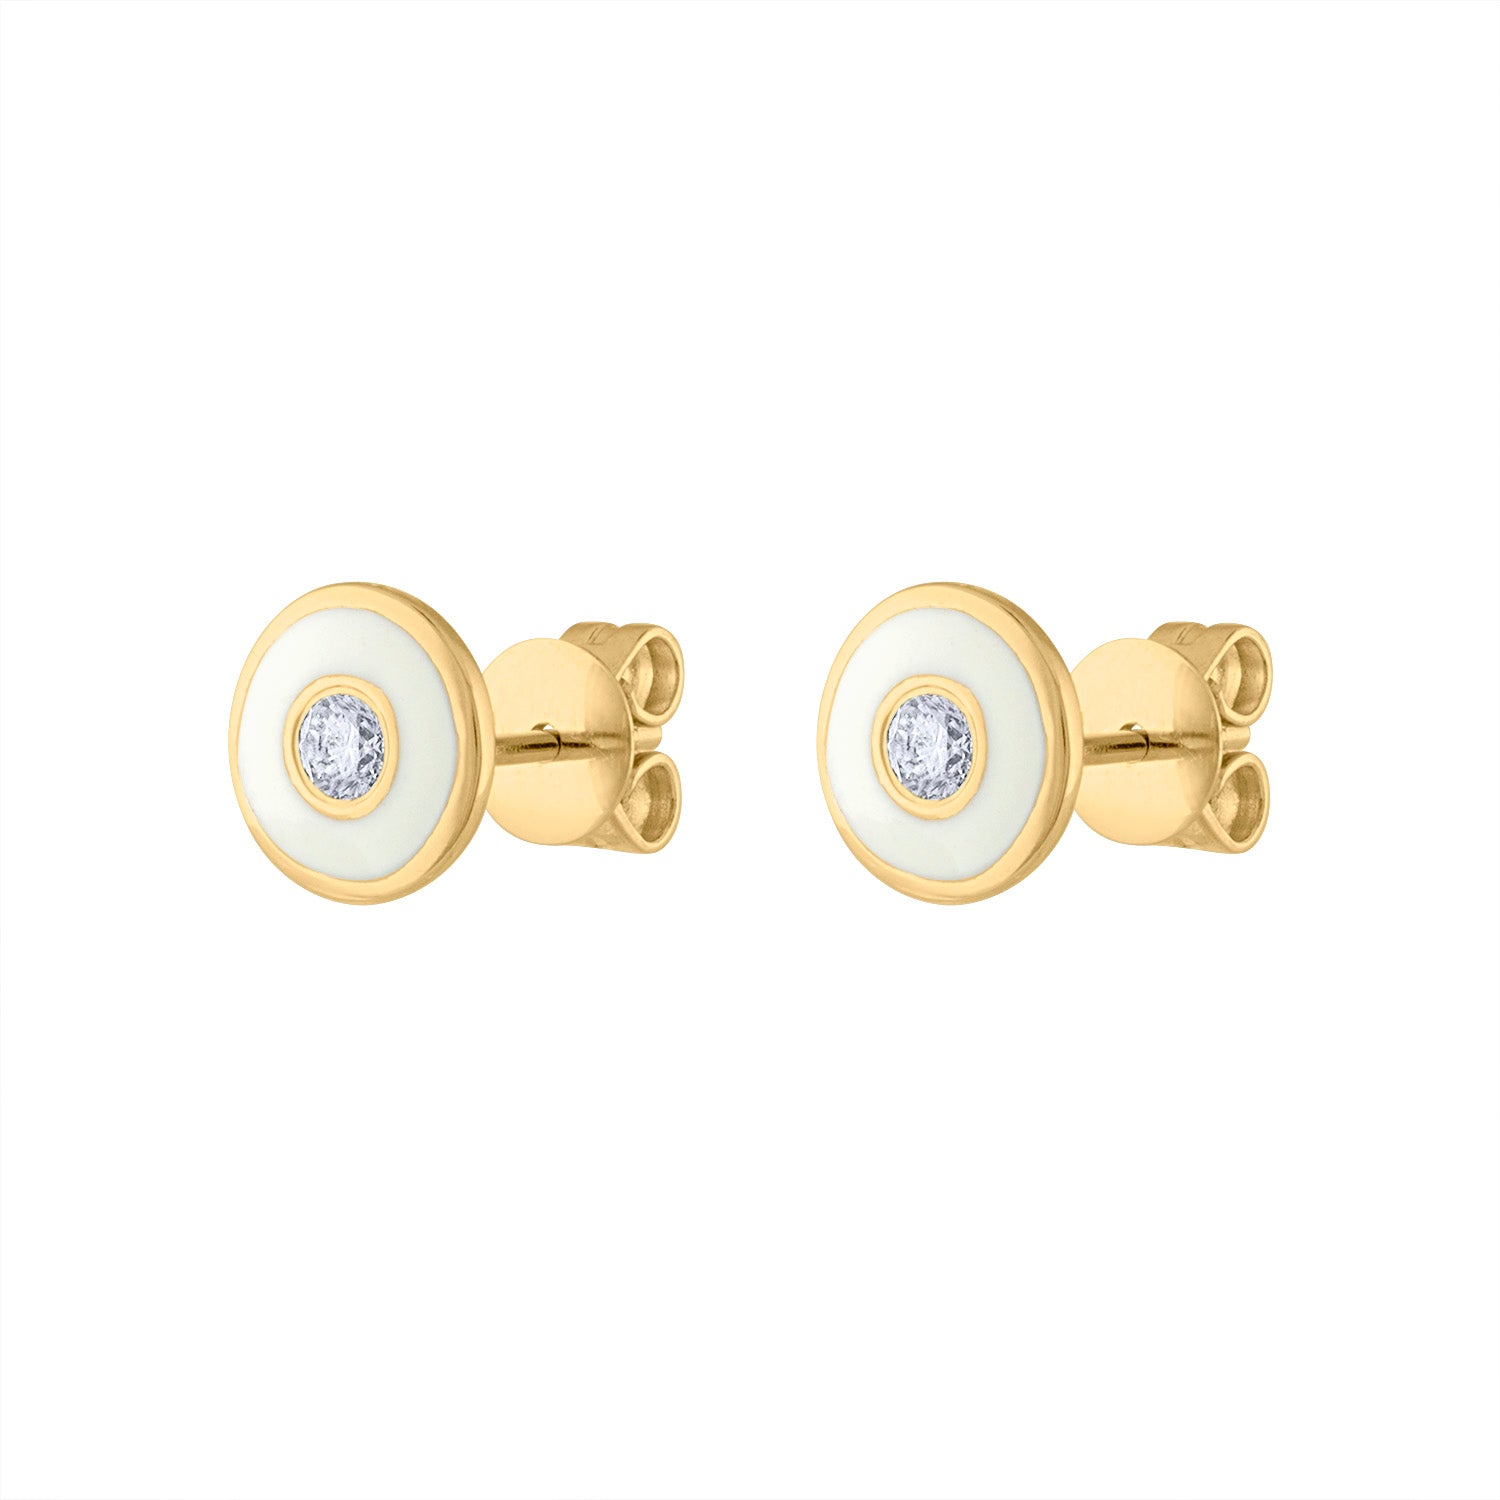 14KT YELLOW GOLD DIAMOND WHITE ENAMEL CIRCLE EARRING